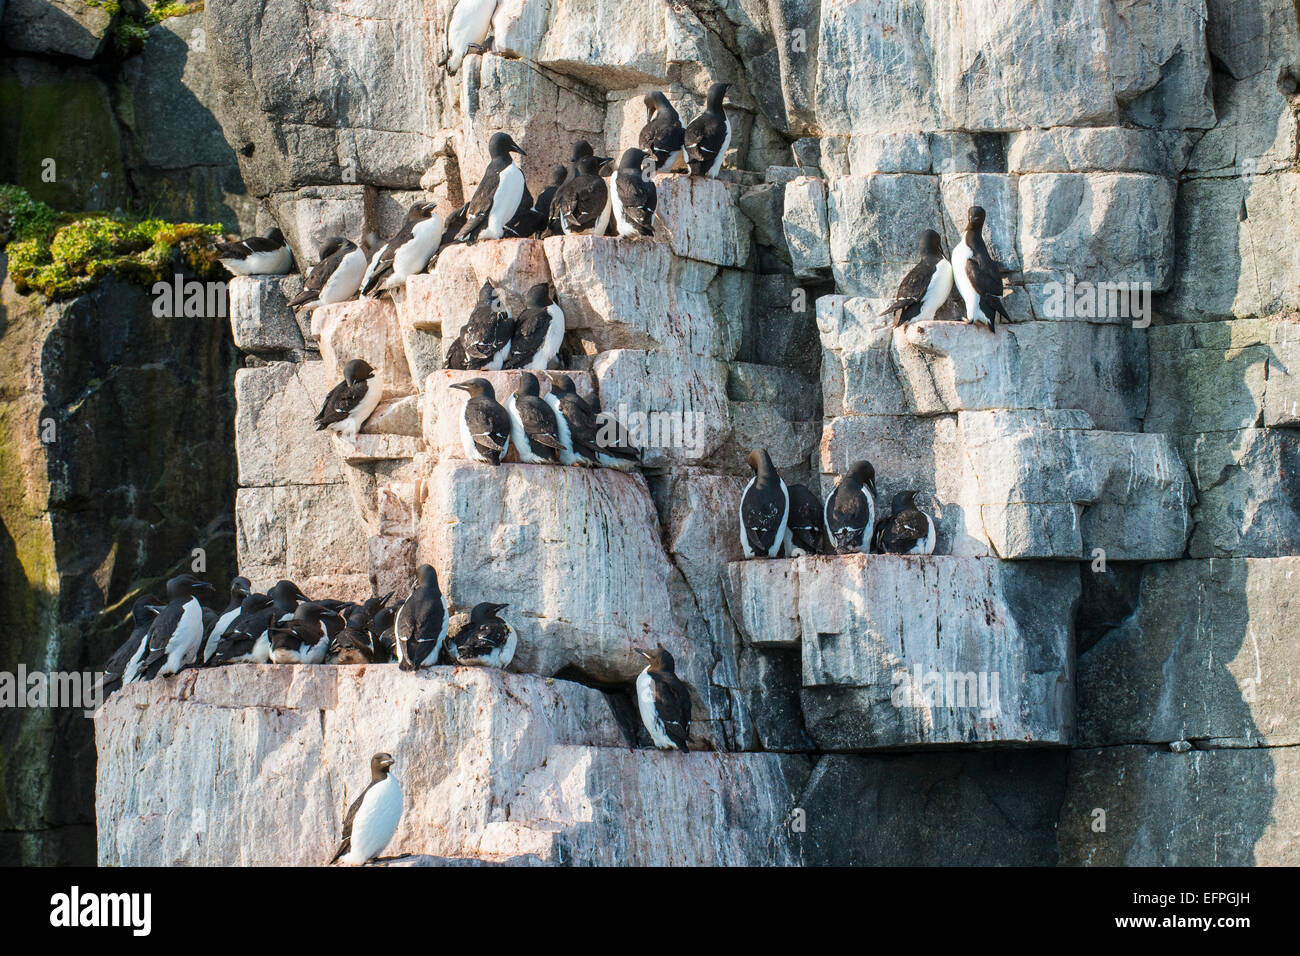 Black-legged kittiwakes (Rissa tridactyla) colony on the cliffs of Alkerfjellet, Svalbard, Arctic - Stock Image